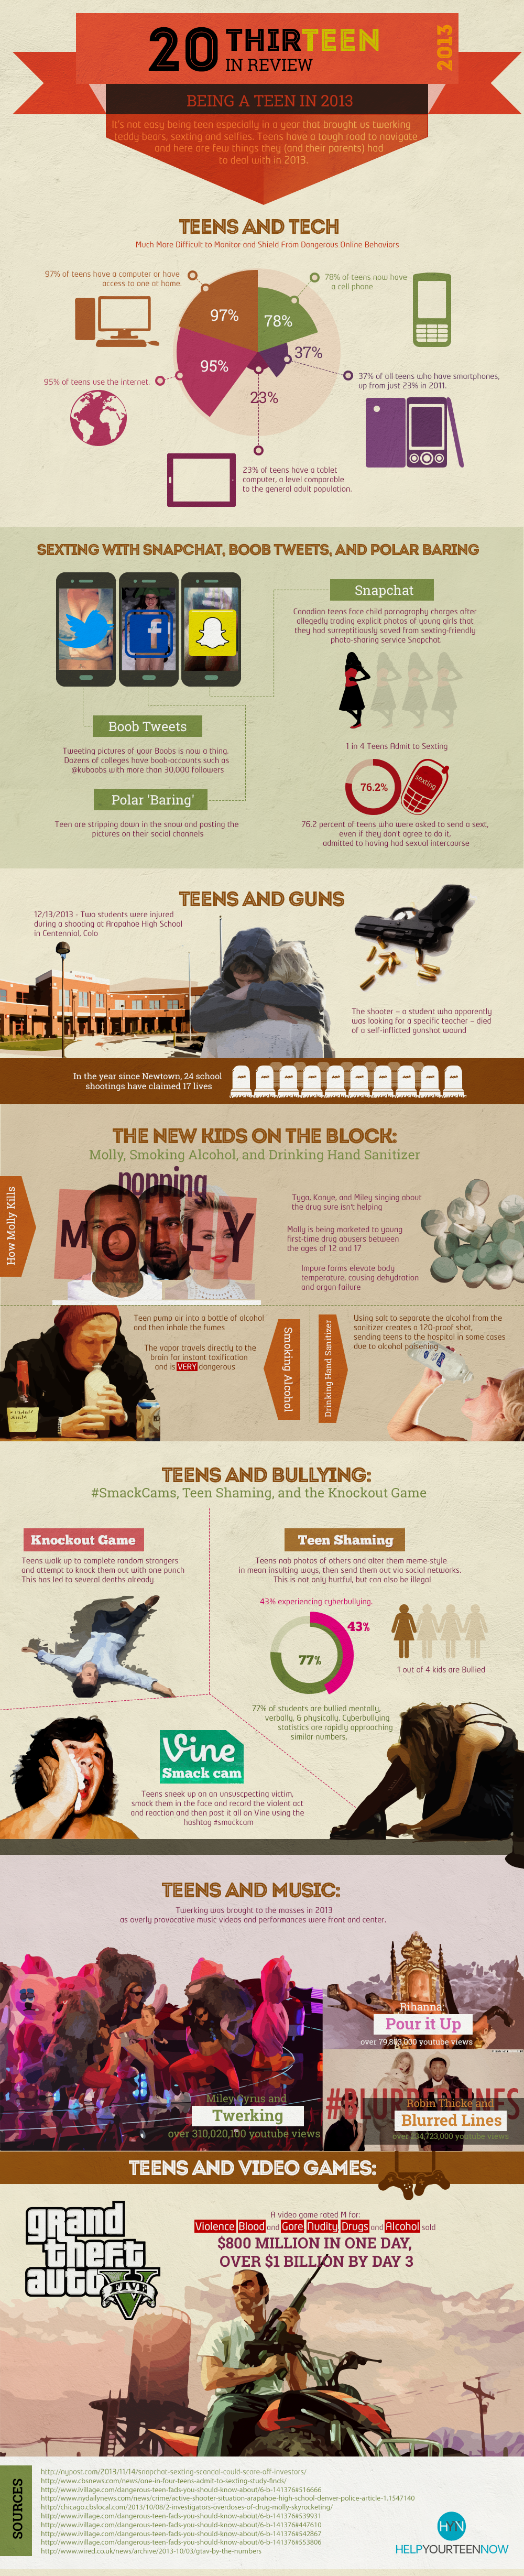 The Challenges Of Being A Teen - Infographic ~ Ministry Best Practices